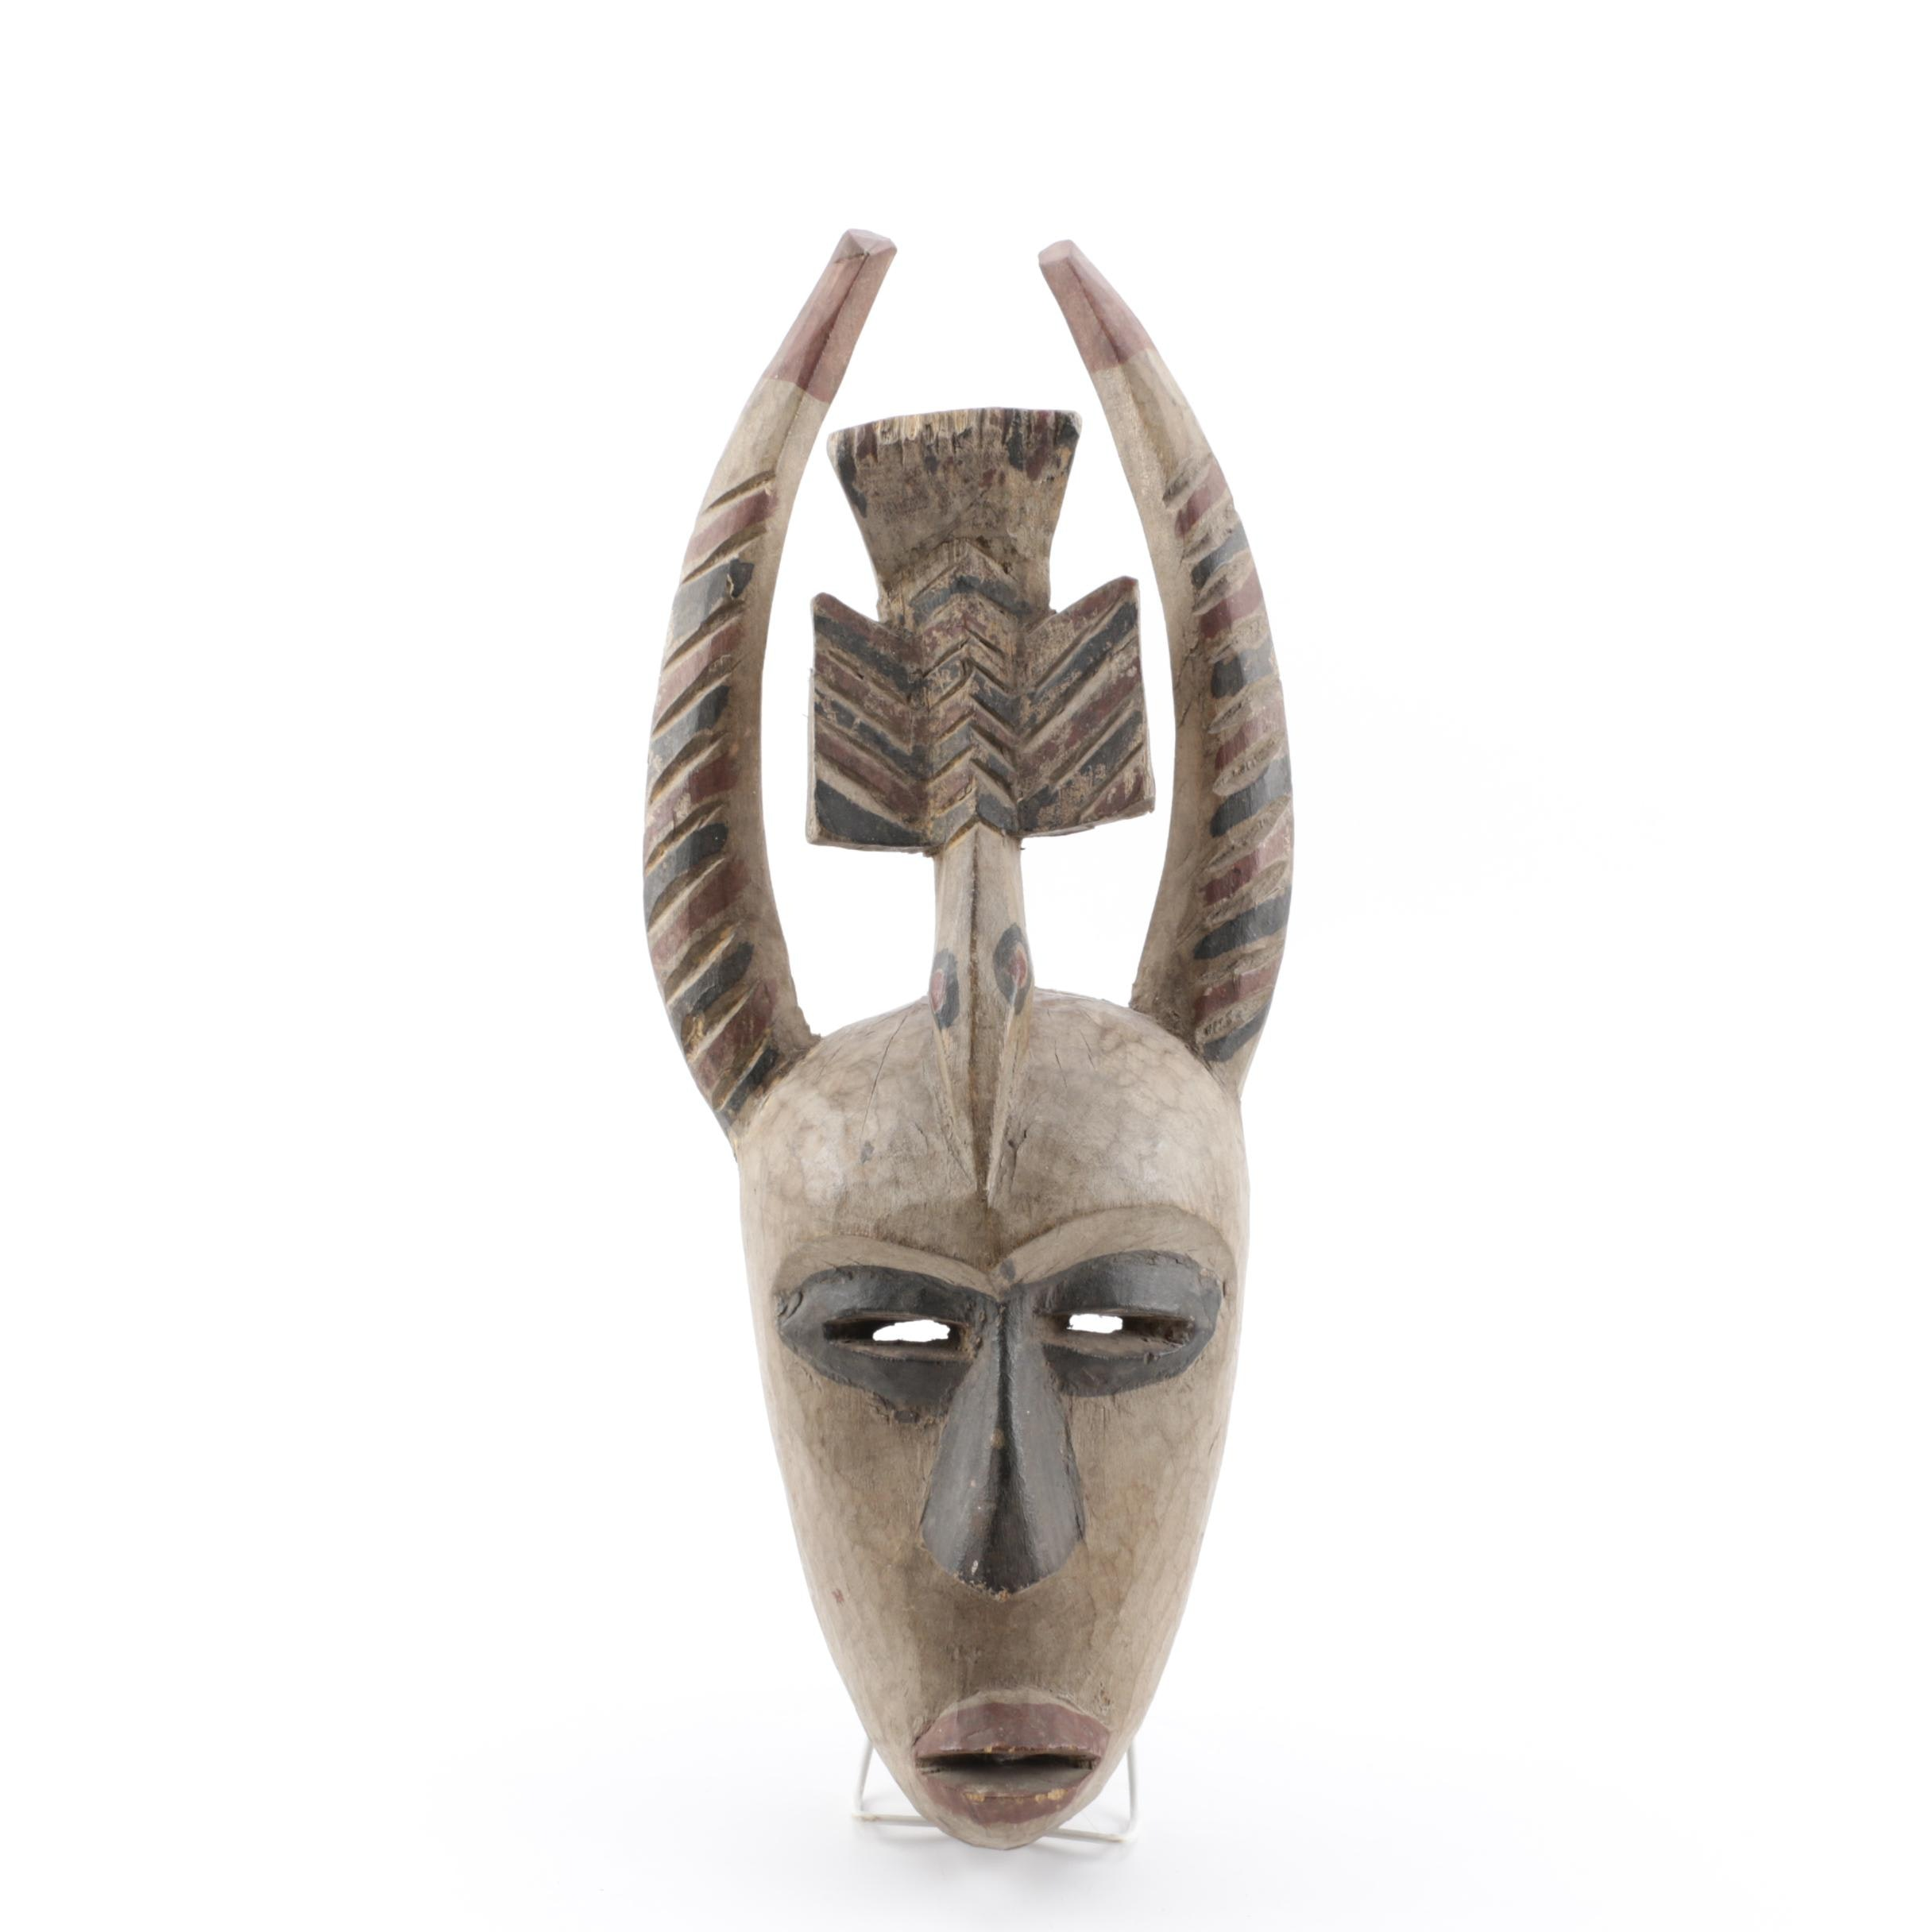 Sub-Saharan West African Hand-Carved Wood Mask